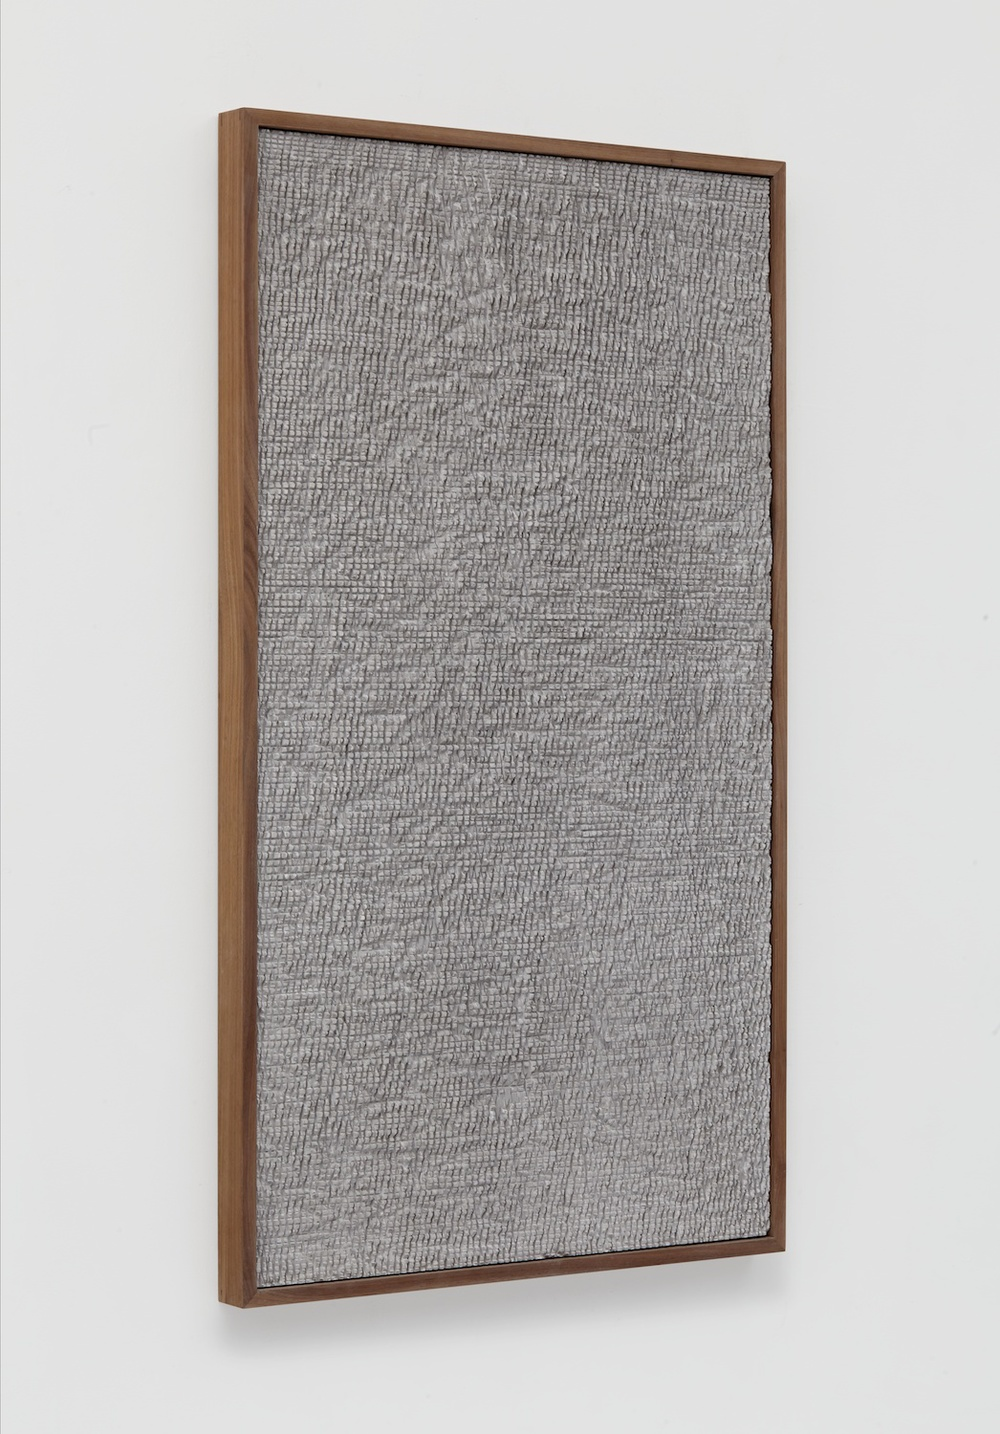 "Anthony Pearson Untitled (Etched Plaster) 2014 Pigmented hydrocal in walnut frame 48 1/2"" x 28"" x 2 1/4"" AP353"